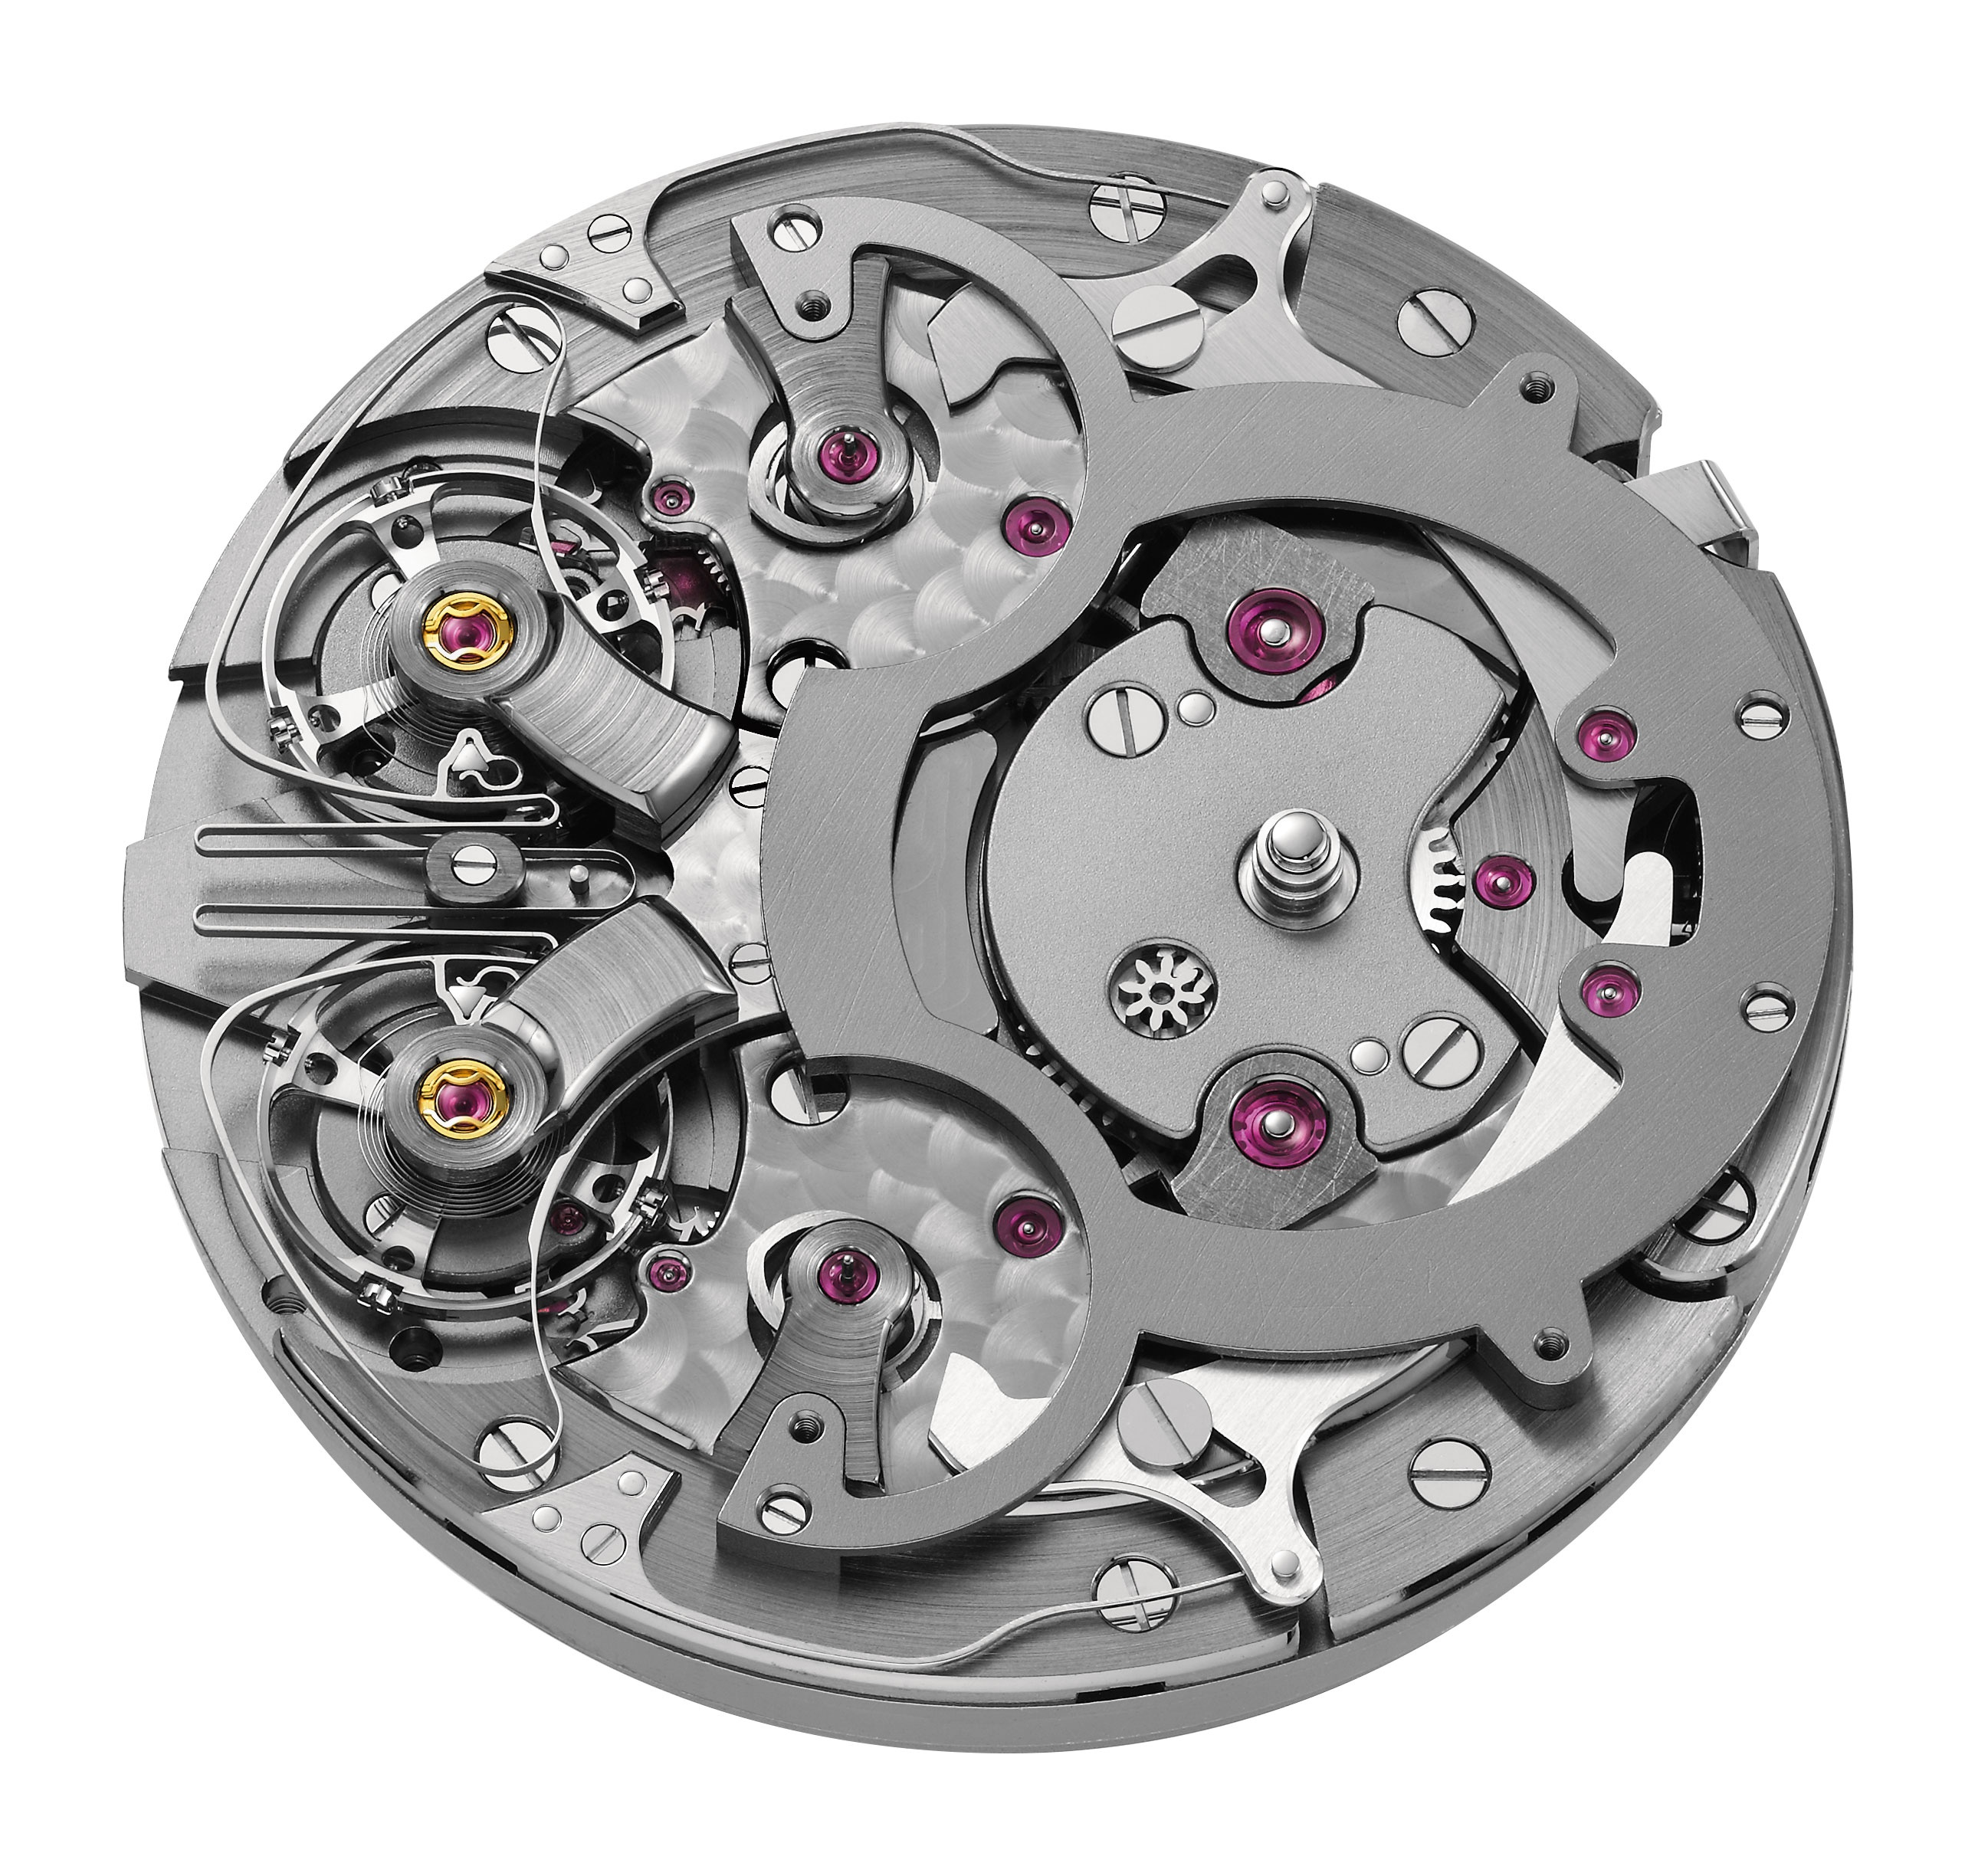 There are 226 parts in the Armin STrom Mirrored Force Resonance caliber ARF 15.